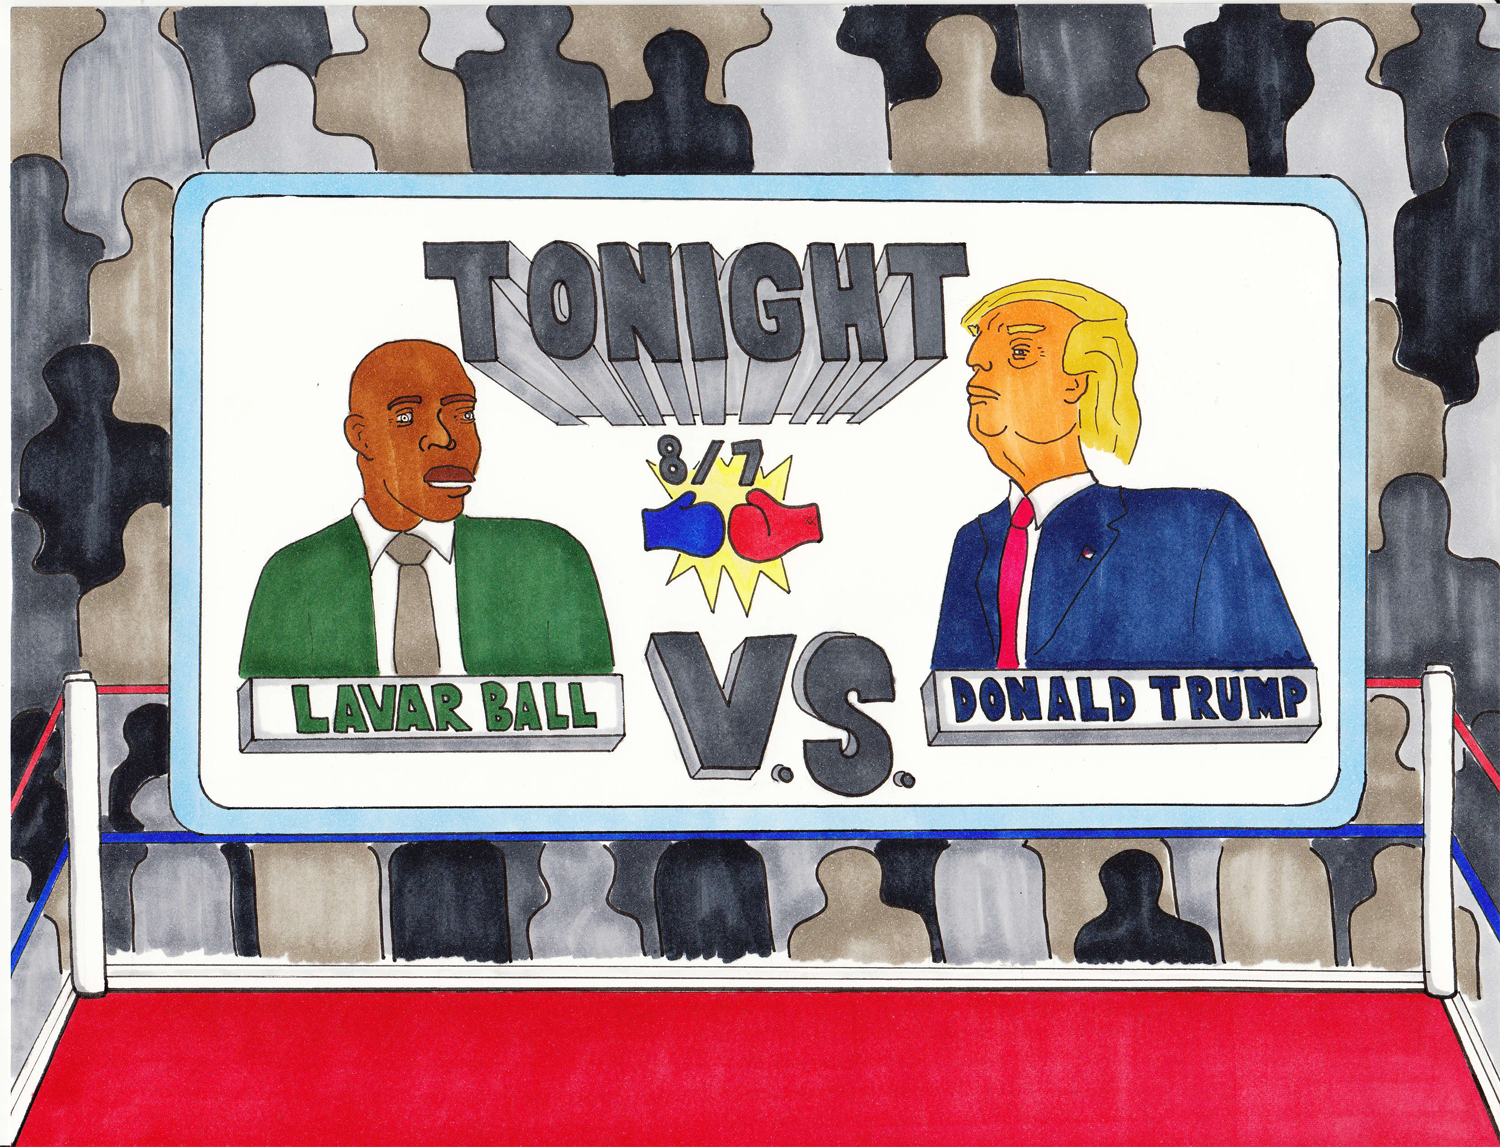 Accepting defeat is not in President Trump's and Lavar Ball's DNA